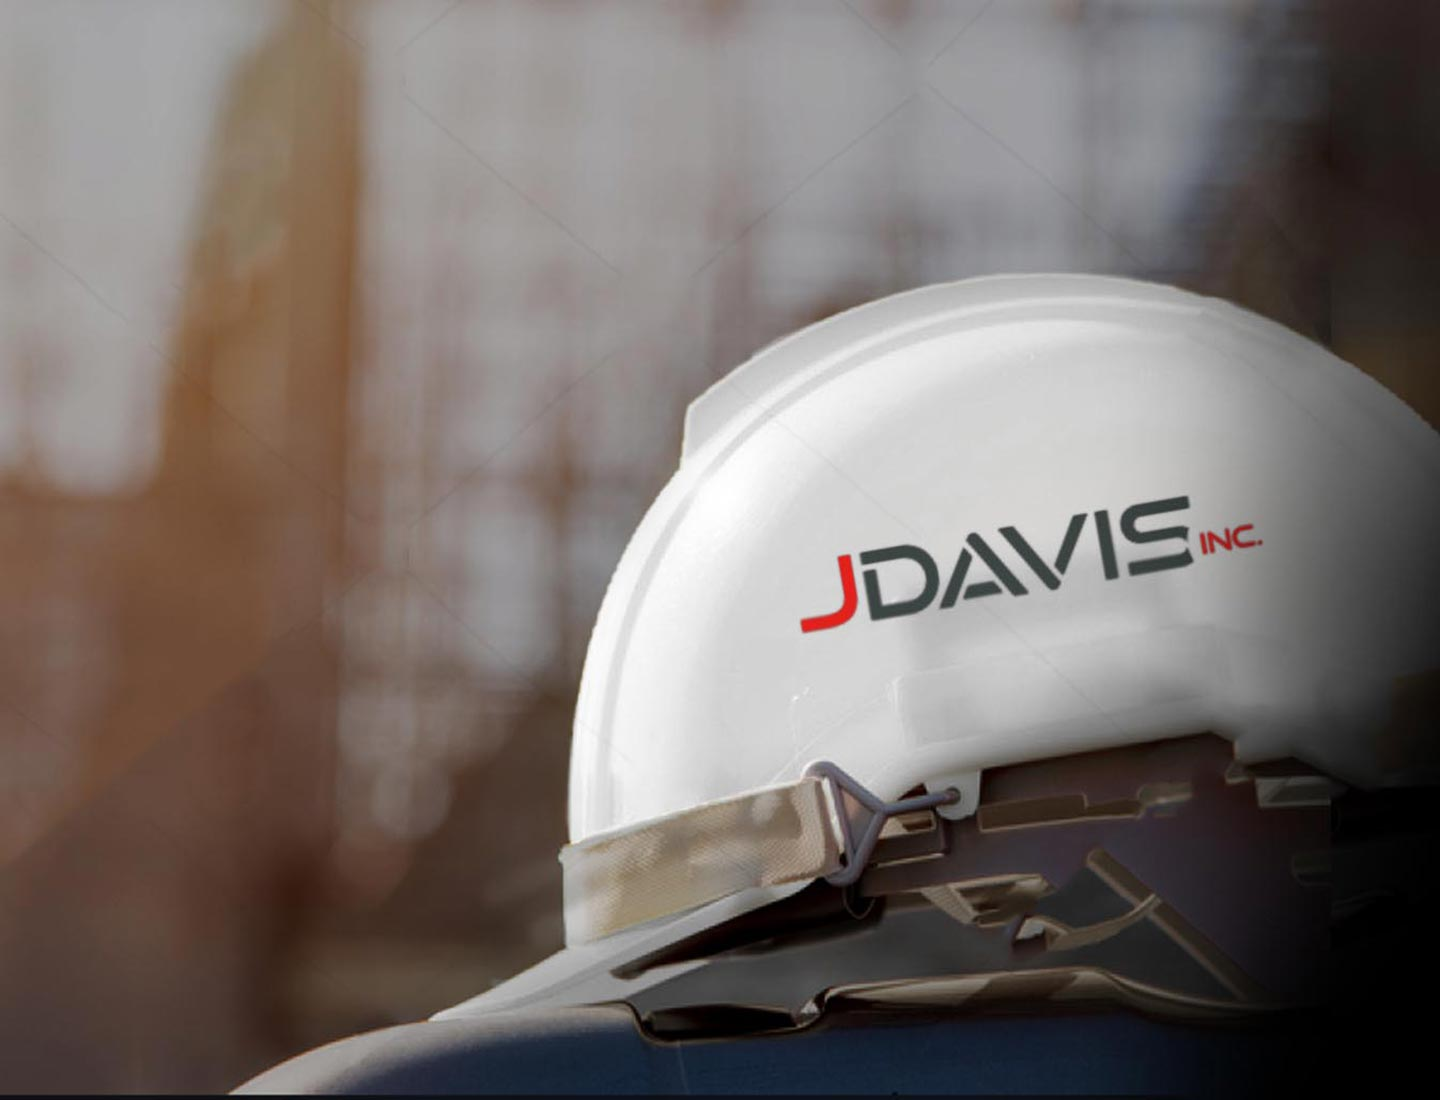 jdavis inc logo on white hardhat with a blurry construction site background